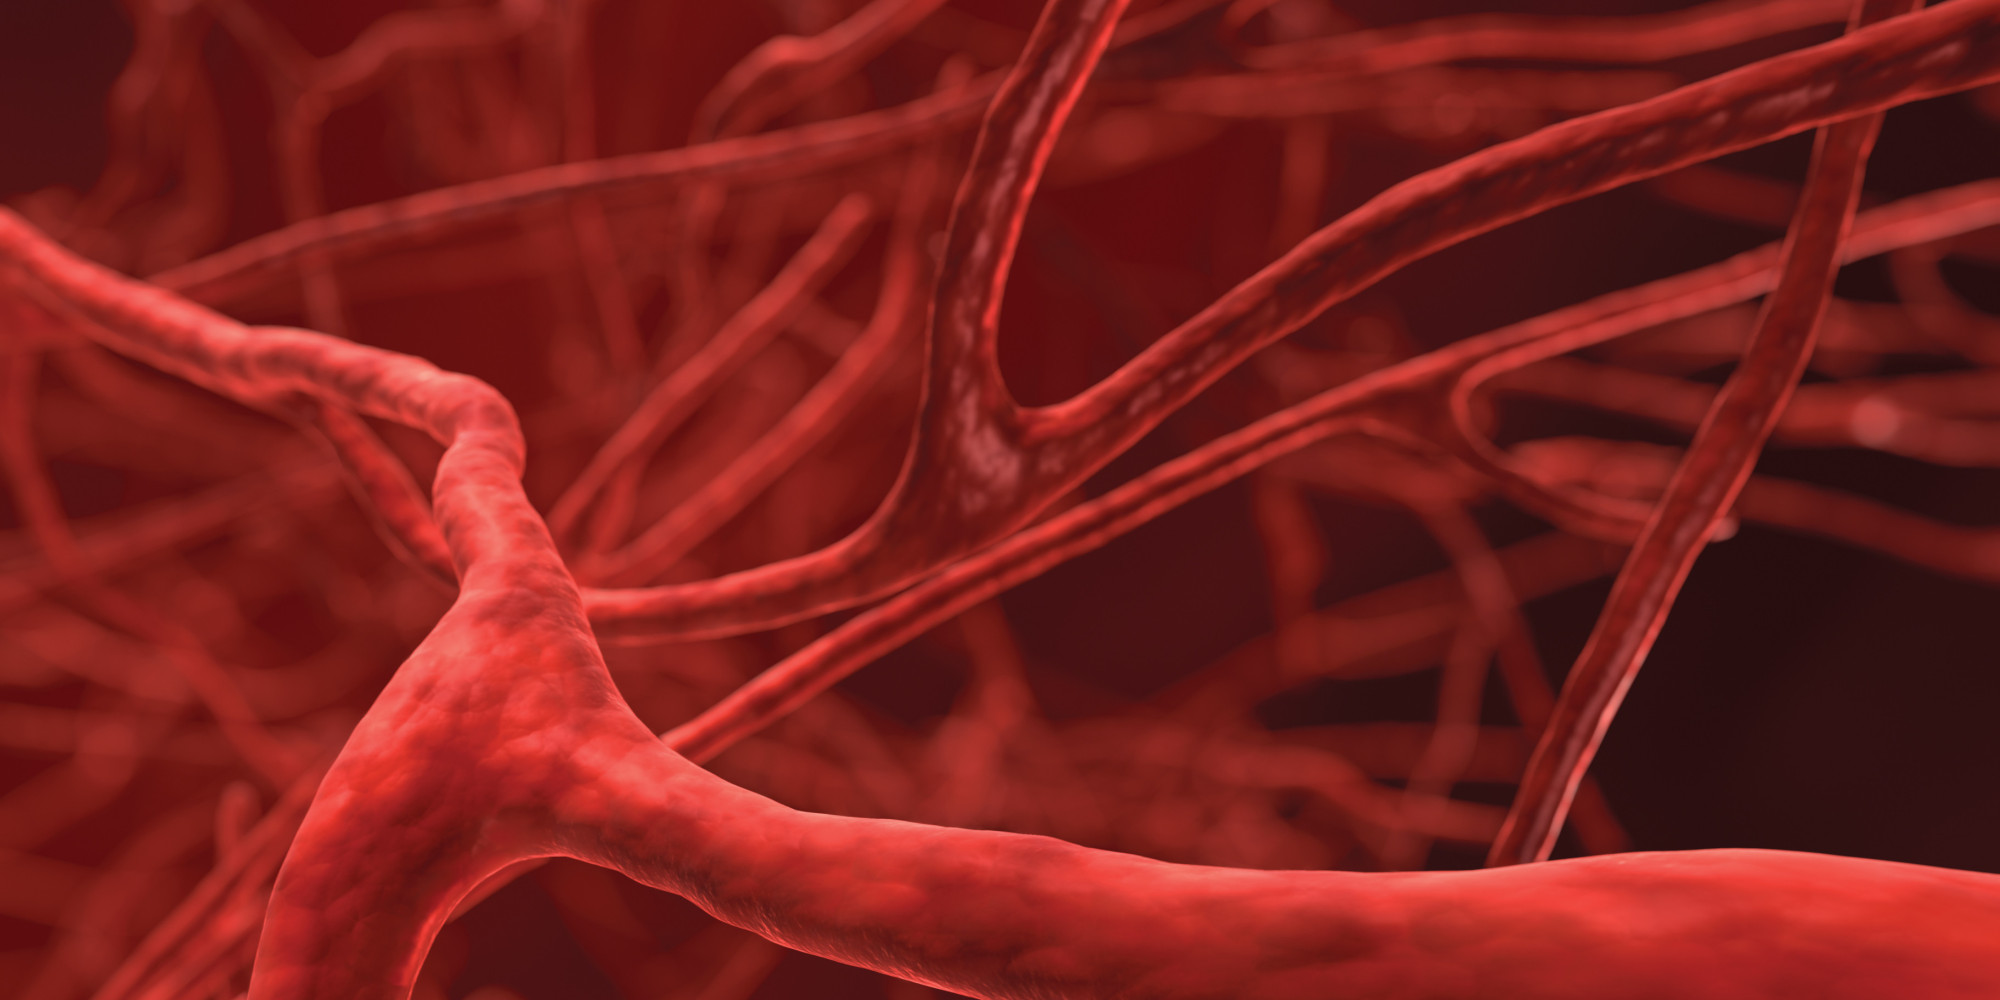 Scientists Can Now 3d Print Human Blood Vessels